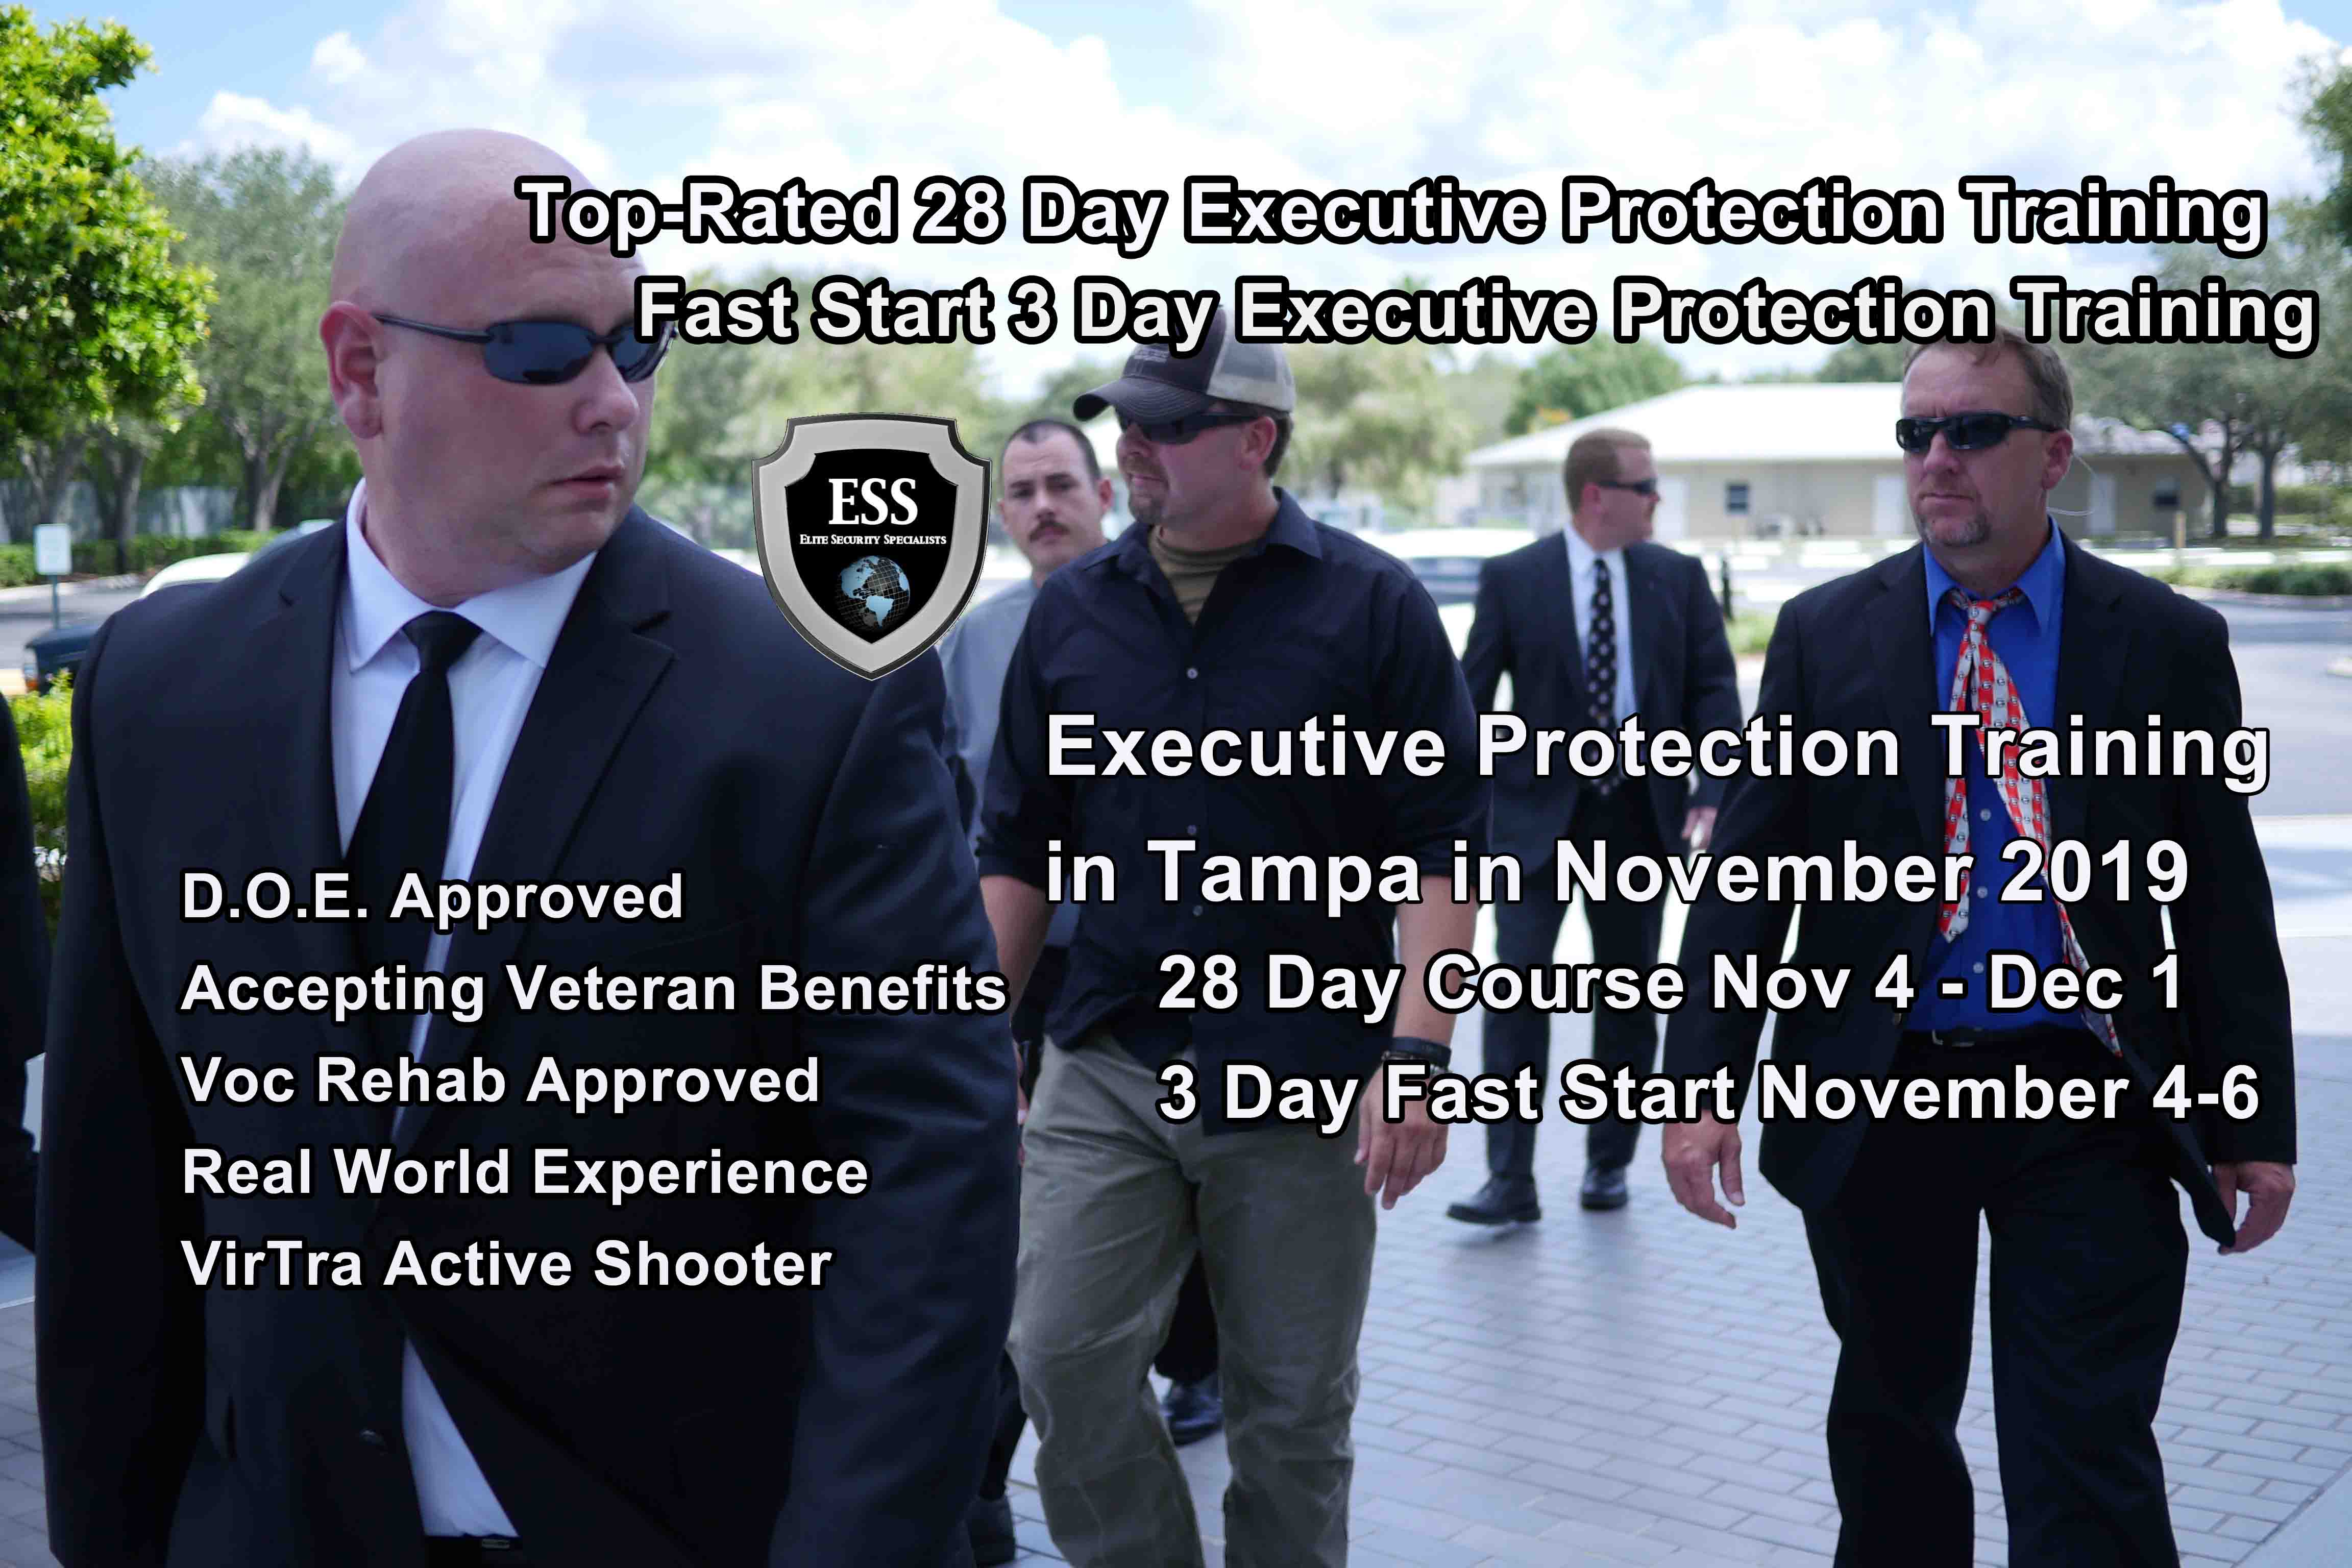 Executive Protection Training - Accepting Veteran Benefits